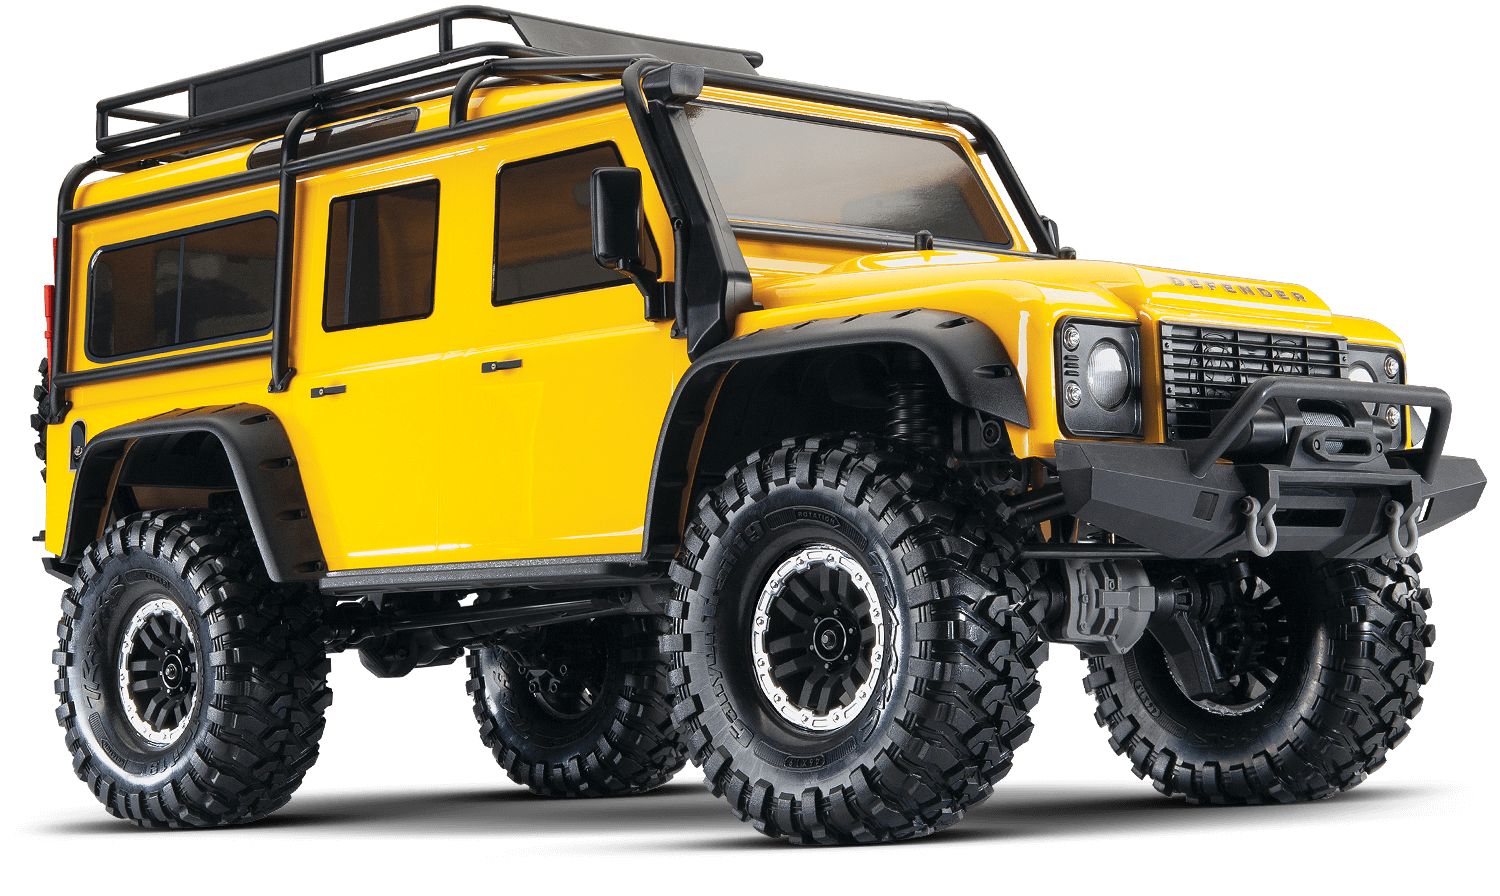 TRX-4 Land Rover Defender (Special Edition Yellow)